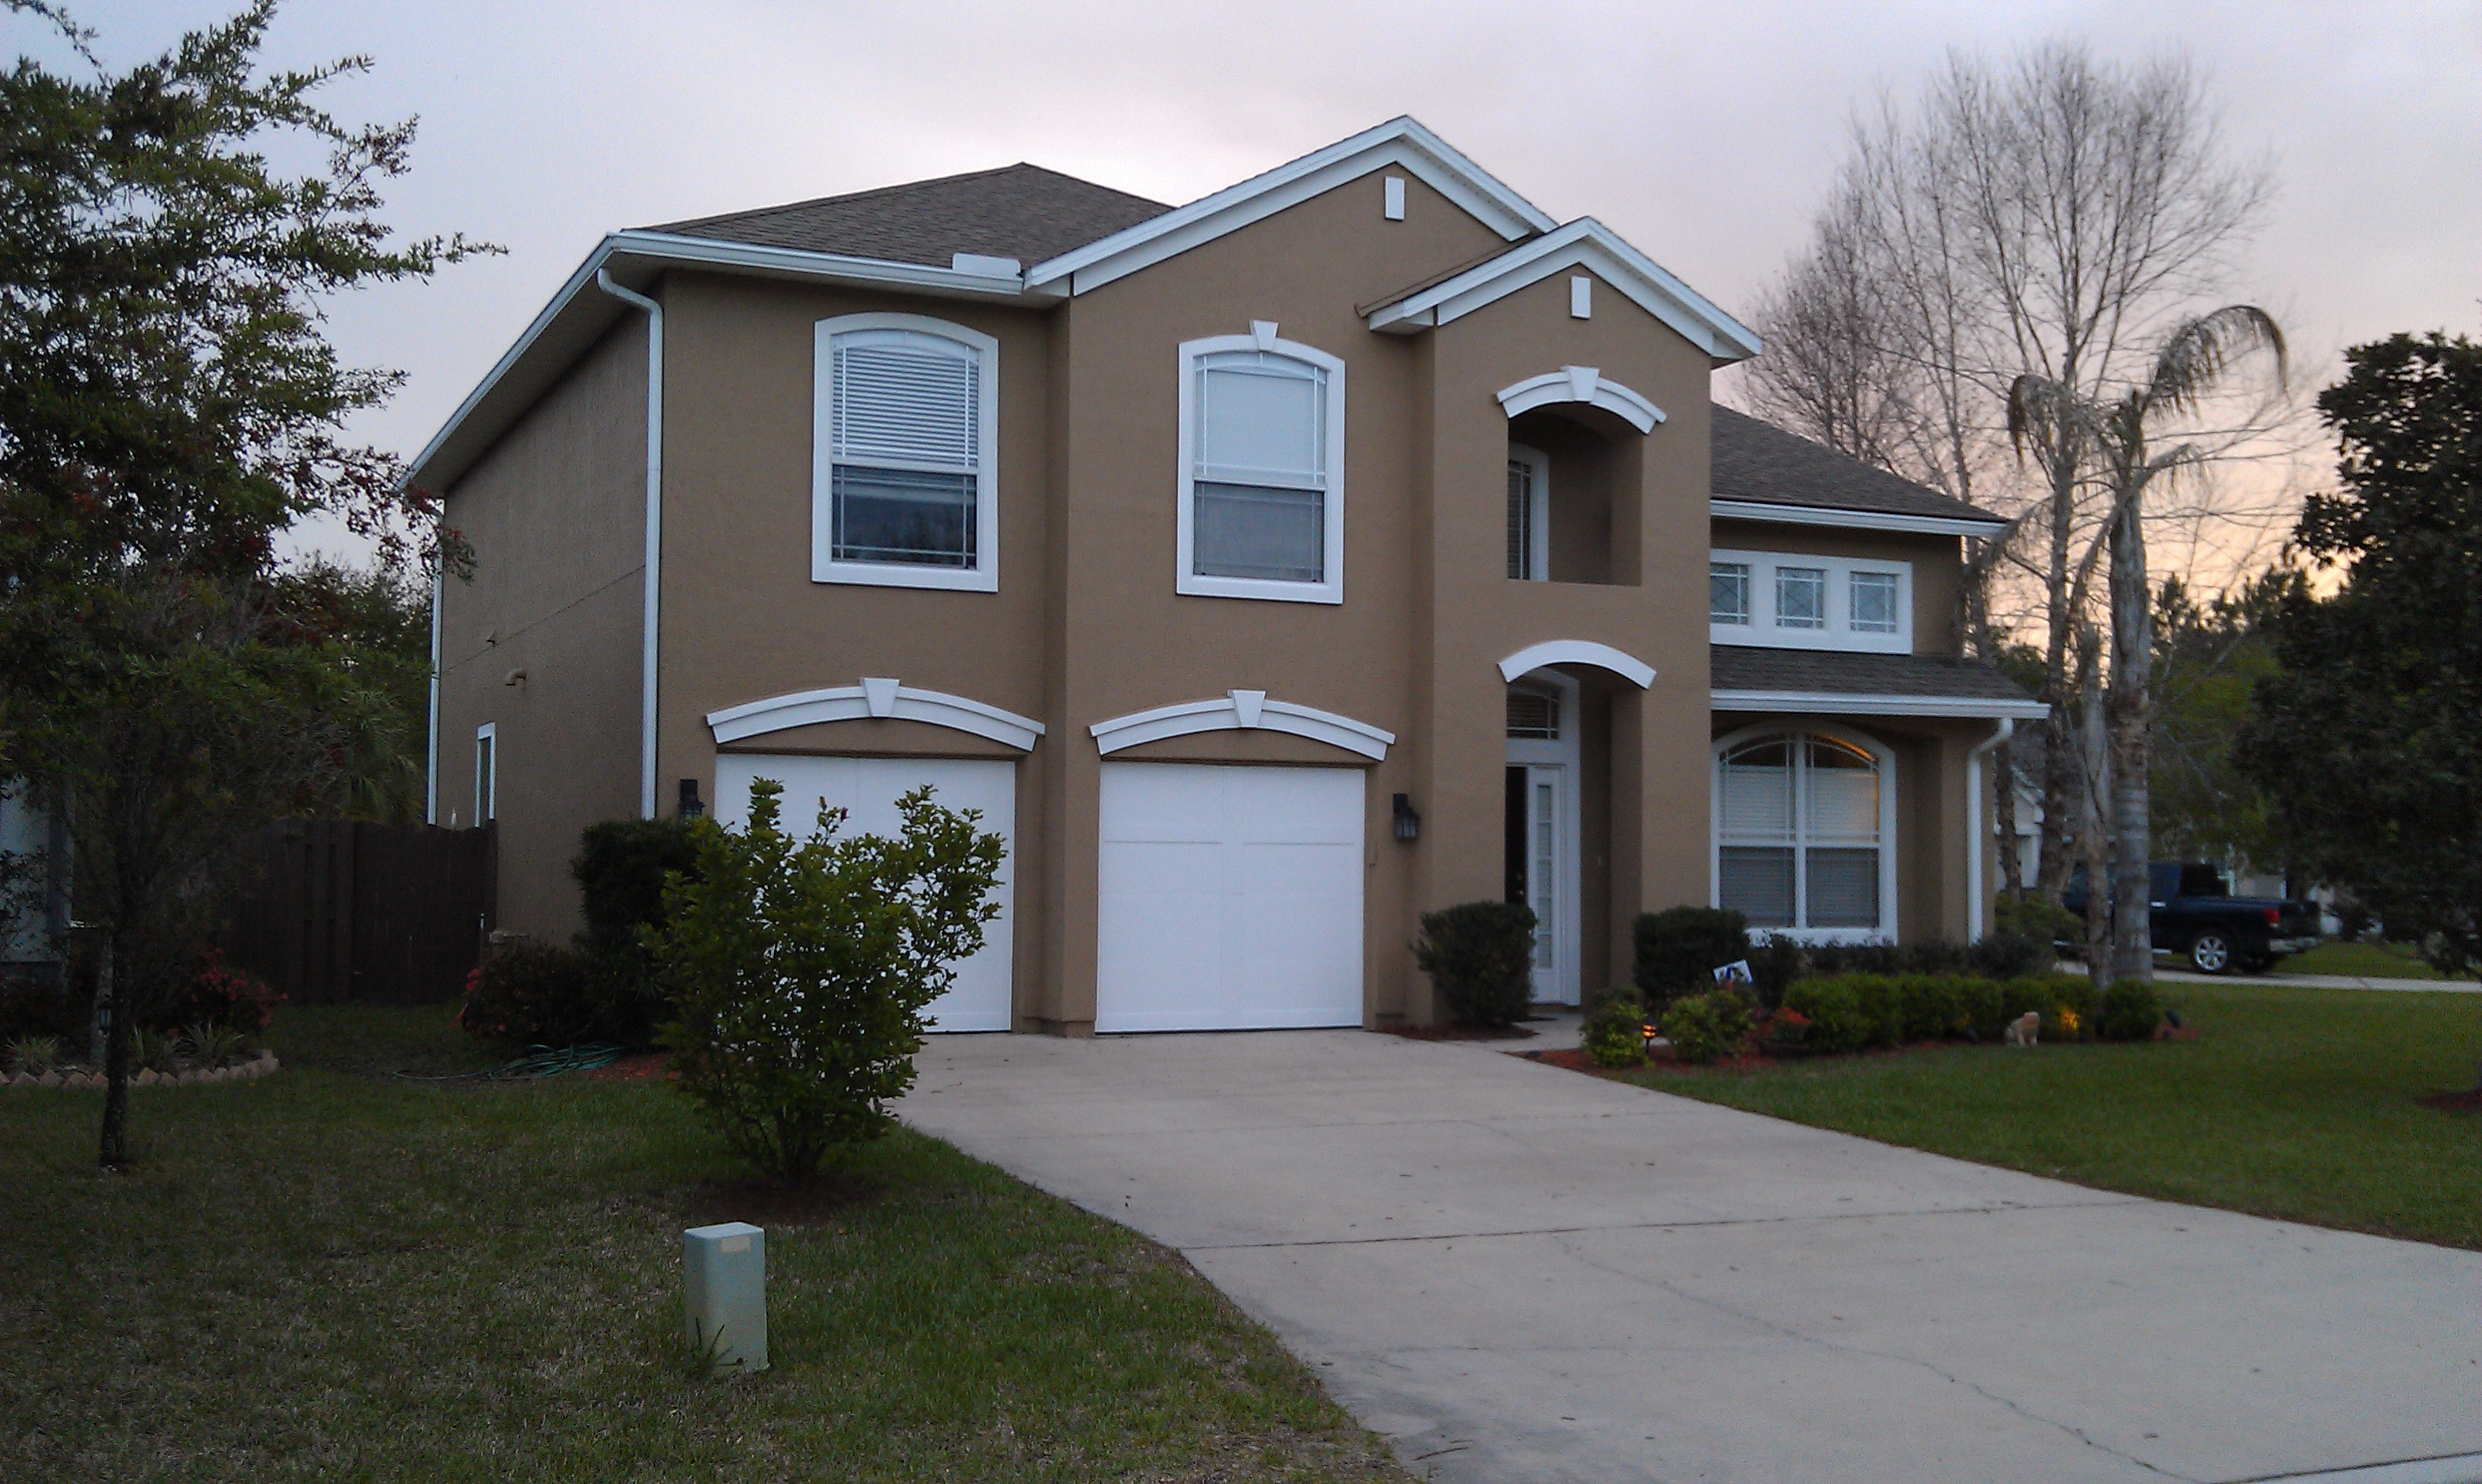 Exterior Painting Contractor For Jacksonville Home Projects